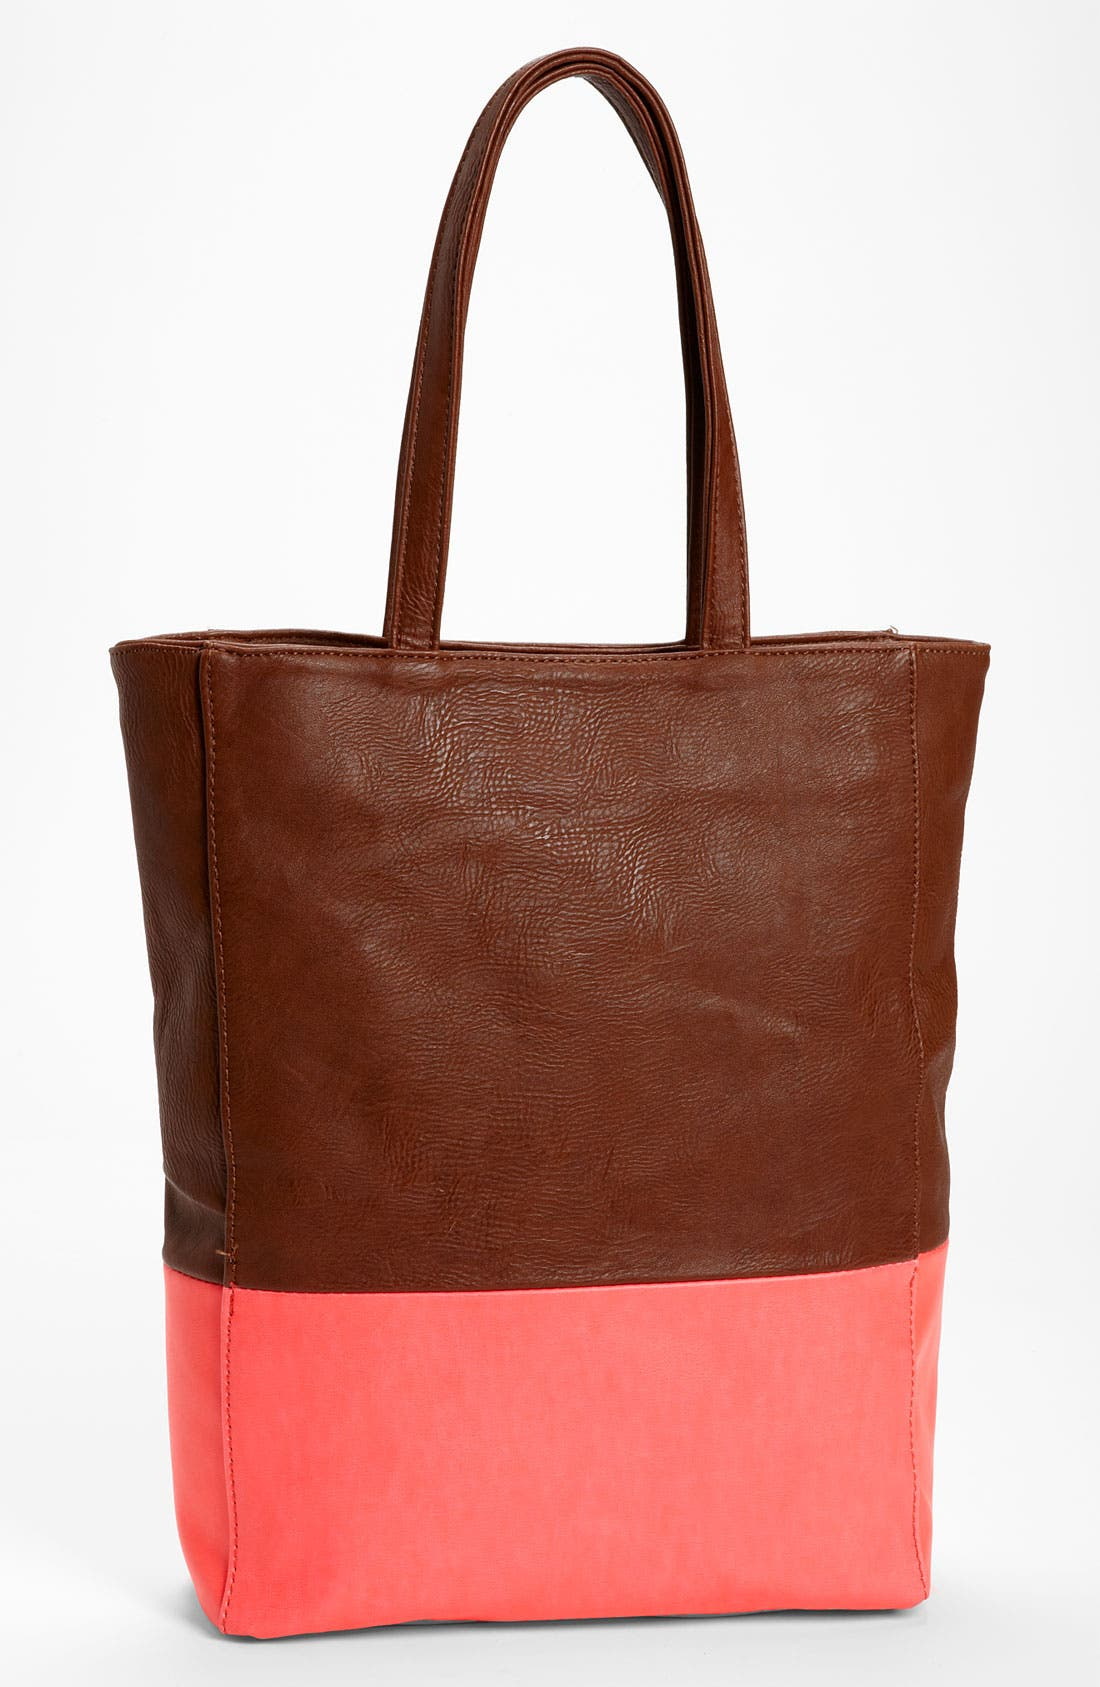 Main Image - Street Level Colorblock Faux Leather Tote